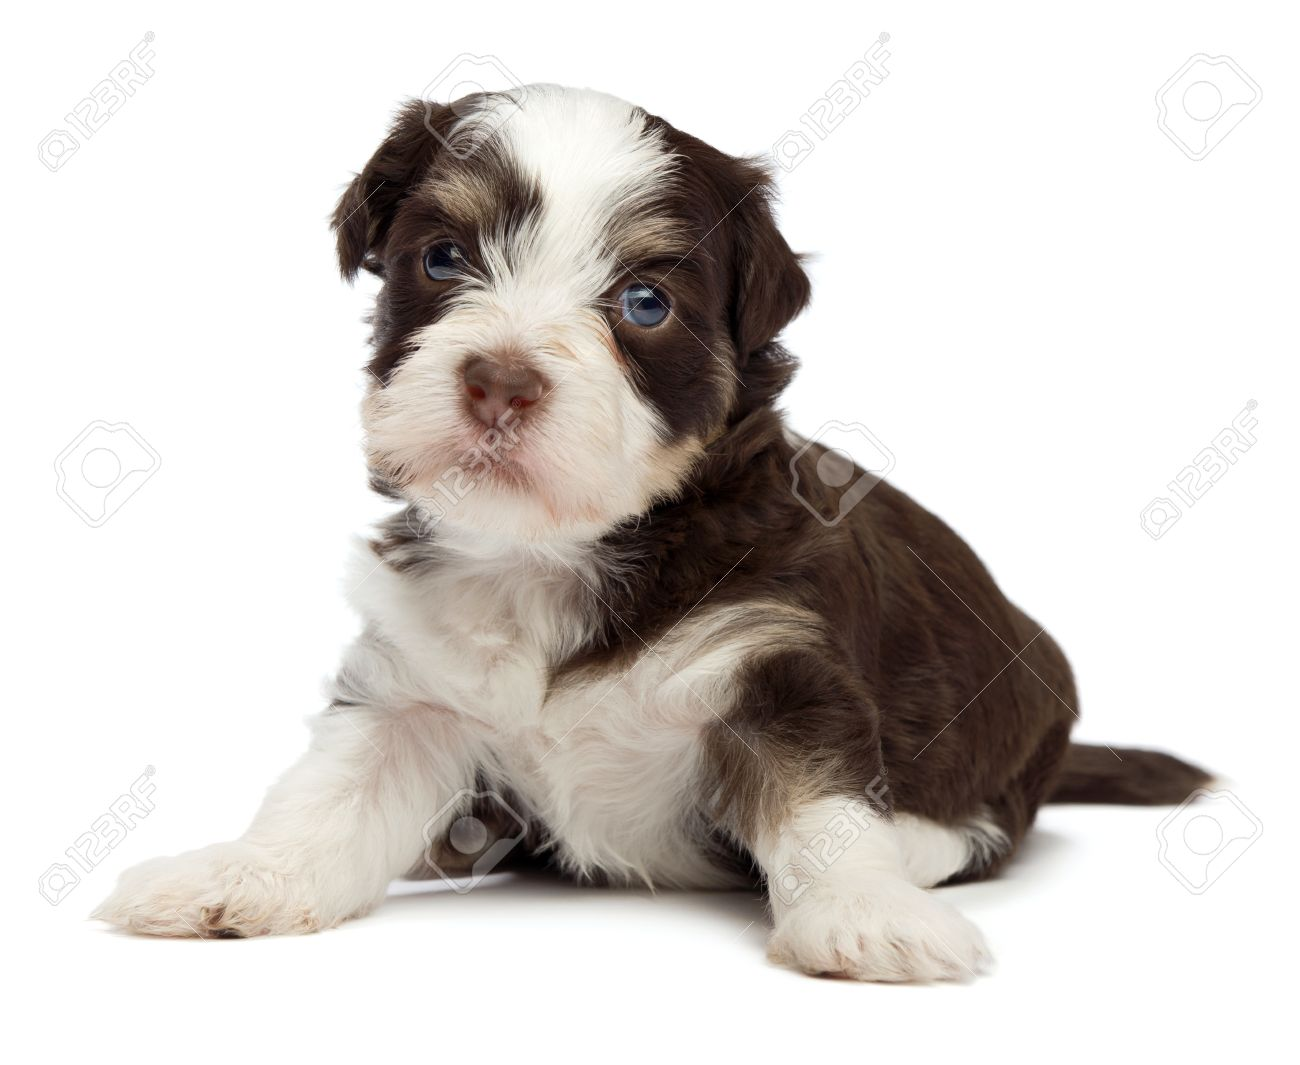 A cute sitting little chocolate havanese puppy dog isolated on